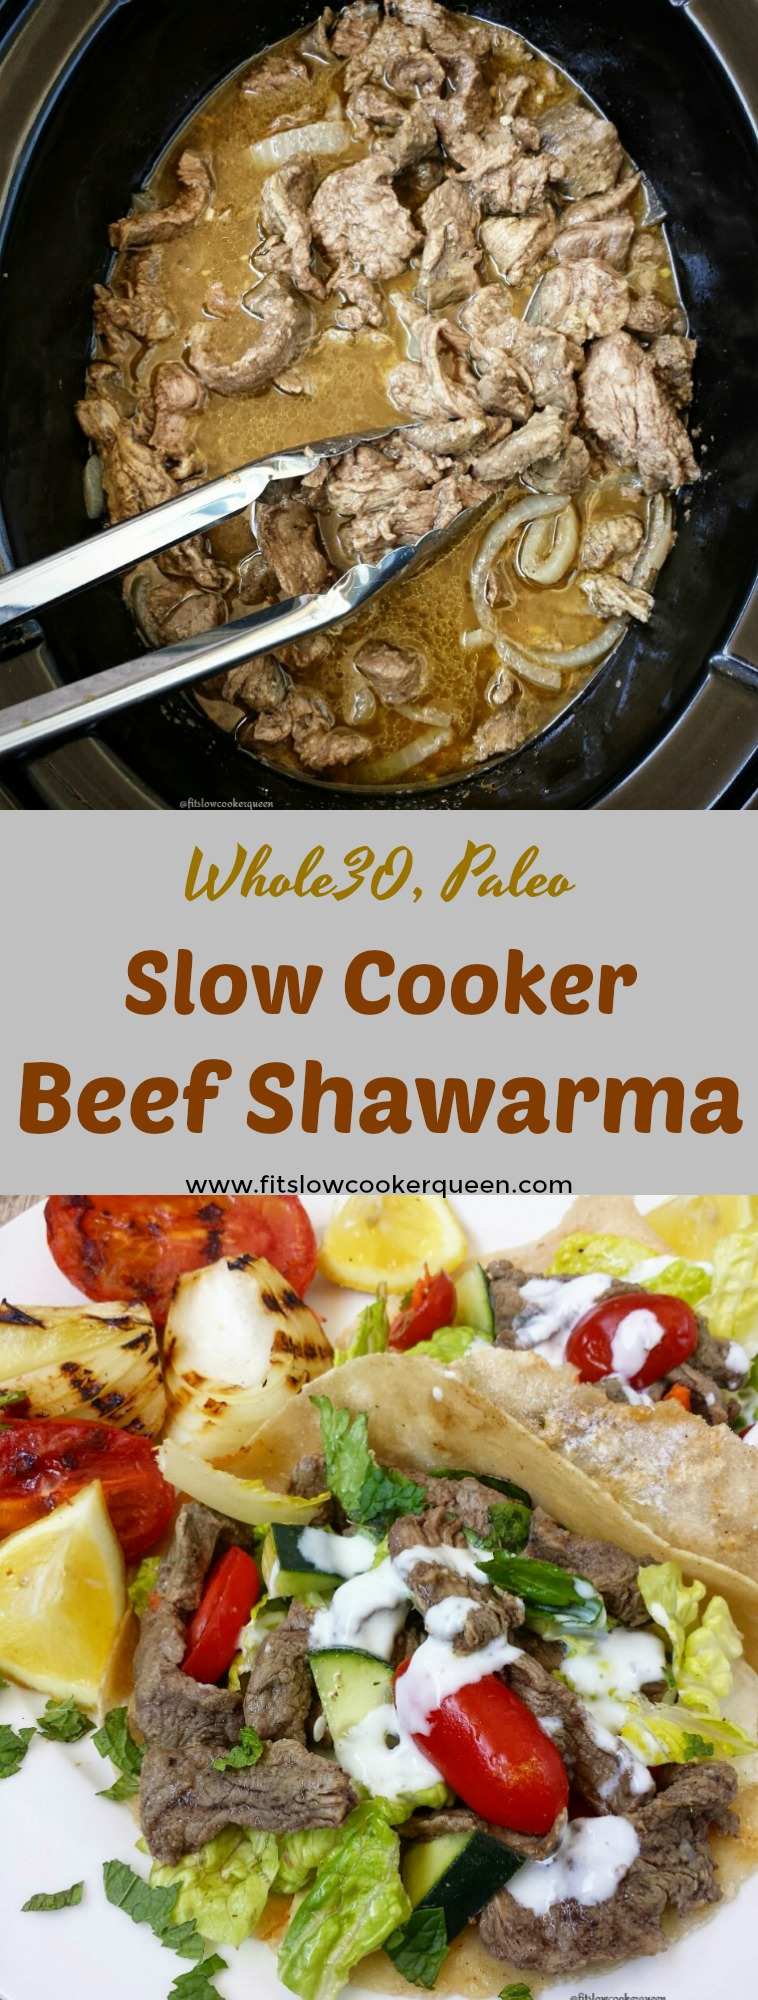 This slow cooker version of beef shawarma is easy and extremely flavorful. Using all natural ingredients, it's also healthy being both paleo and whole30.